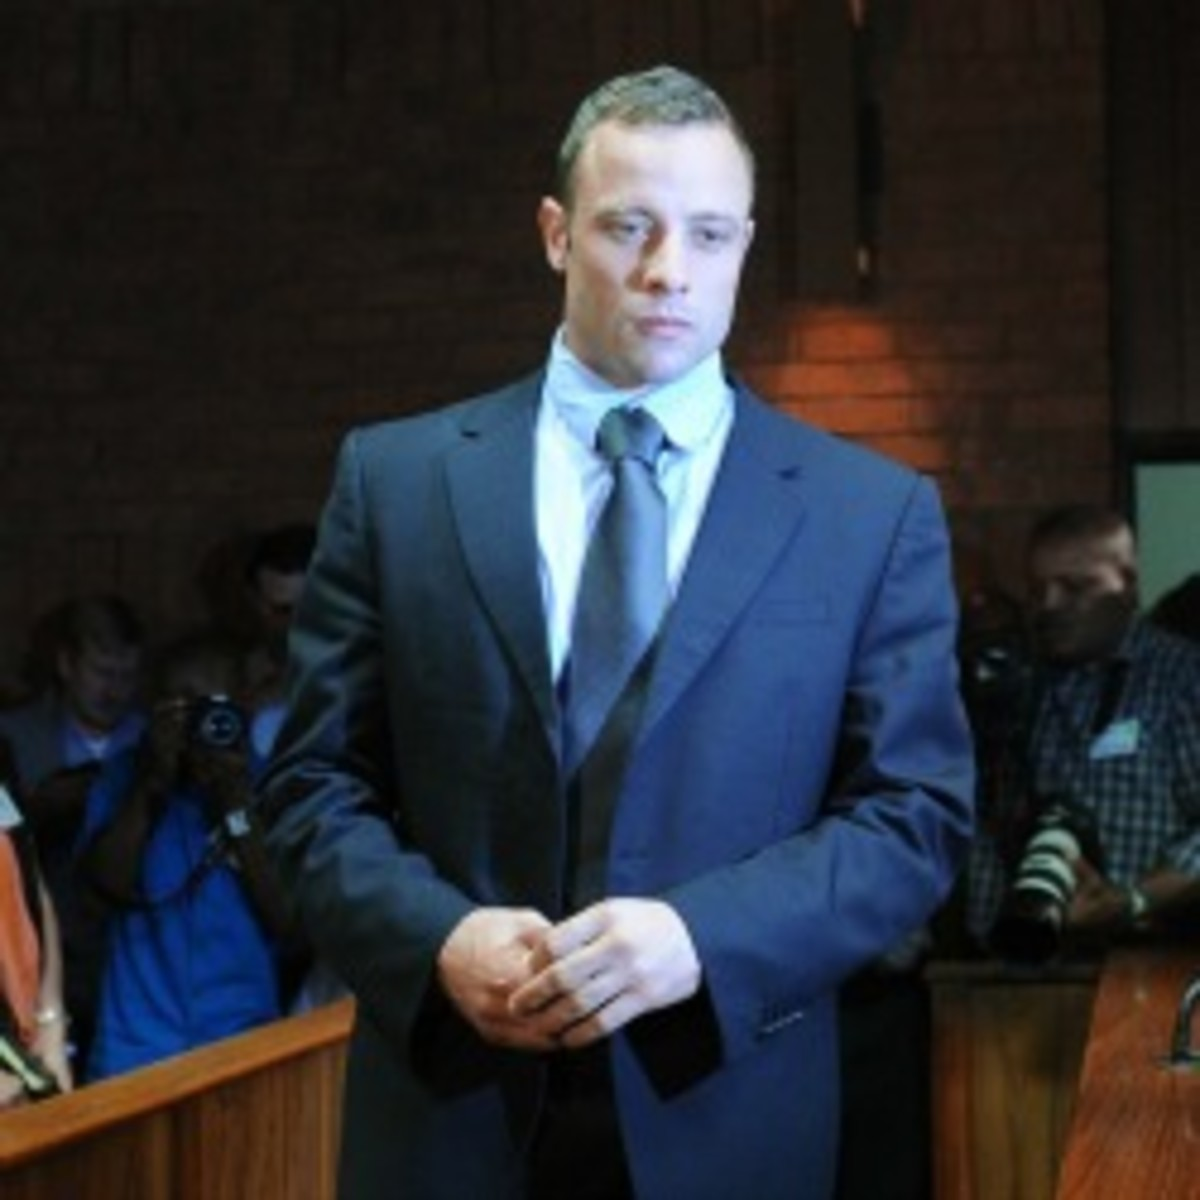 Oscar Pistorius reported to the authorities on Monday morning. His next court appearance is scheduled for June 4. (Alexander Joe/Getty Images)